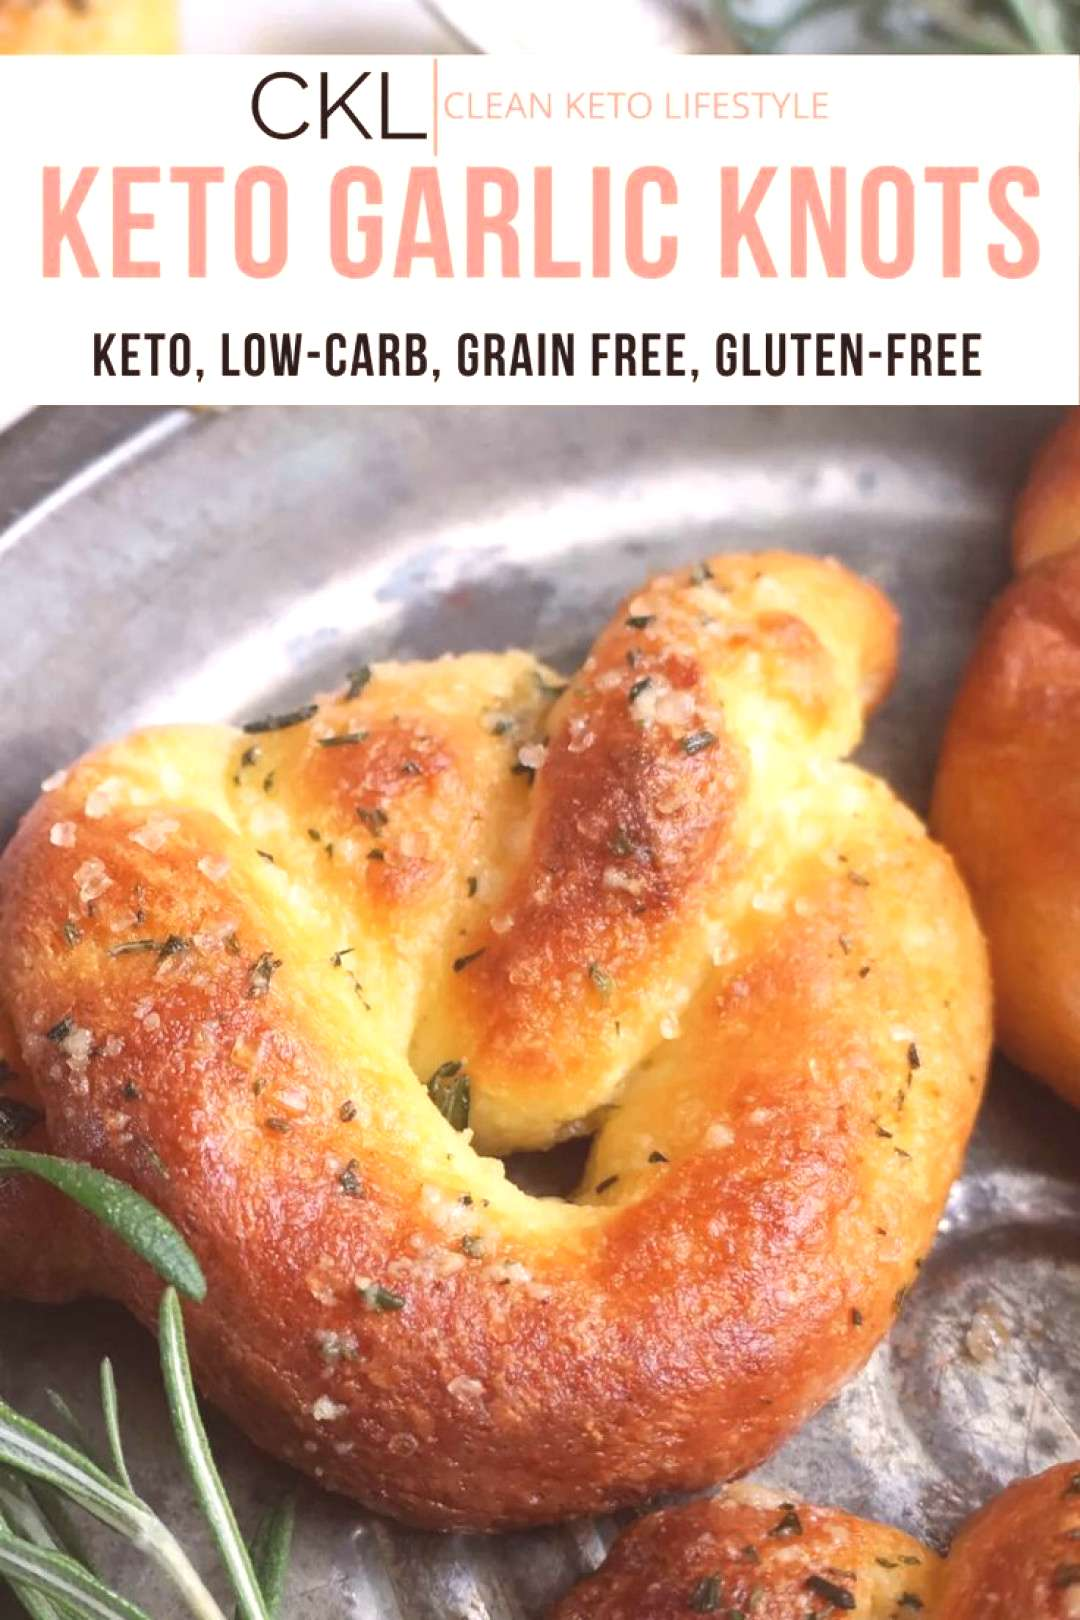 Keto Garlic Knots -  These Keto Garlic Knots with Rosemary are absolute perfection! Serve these in